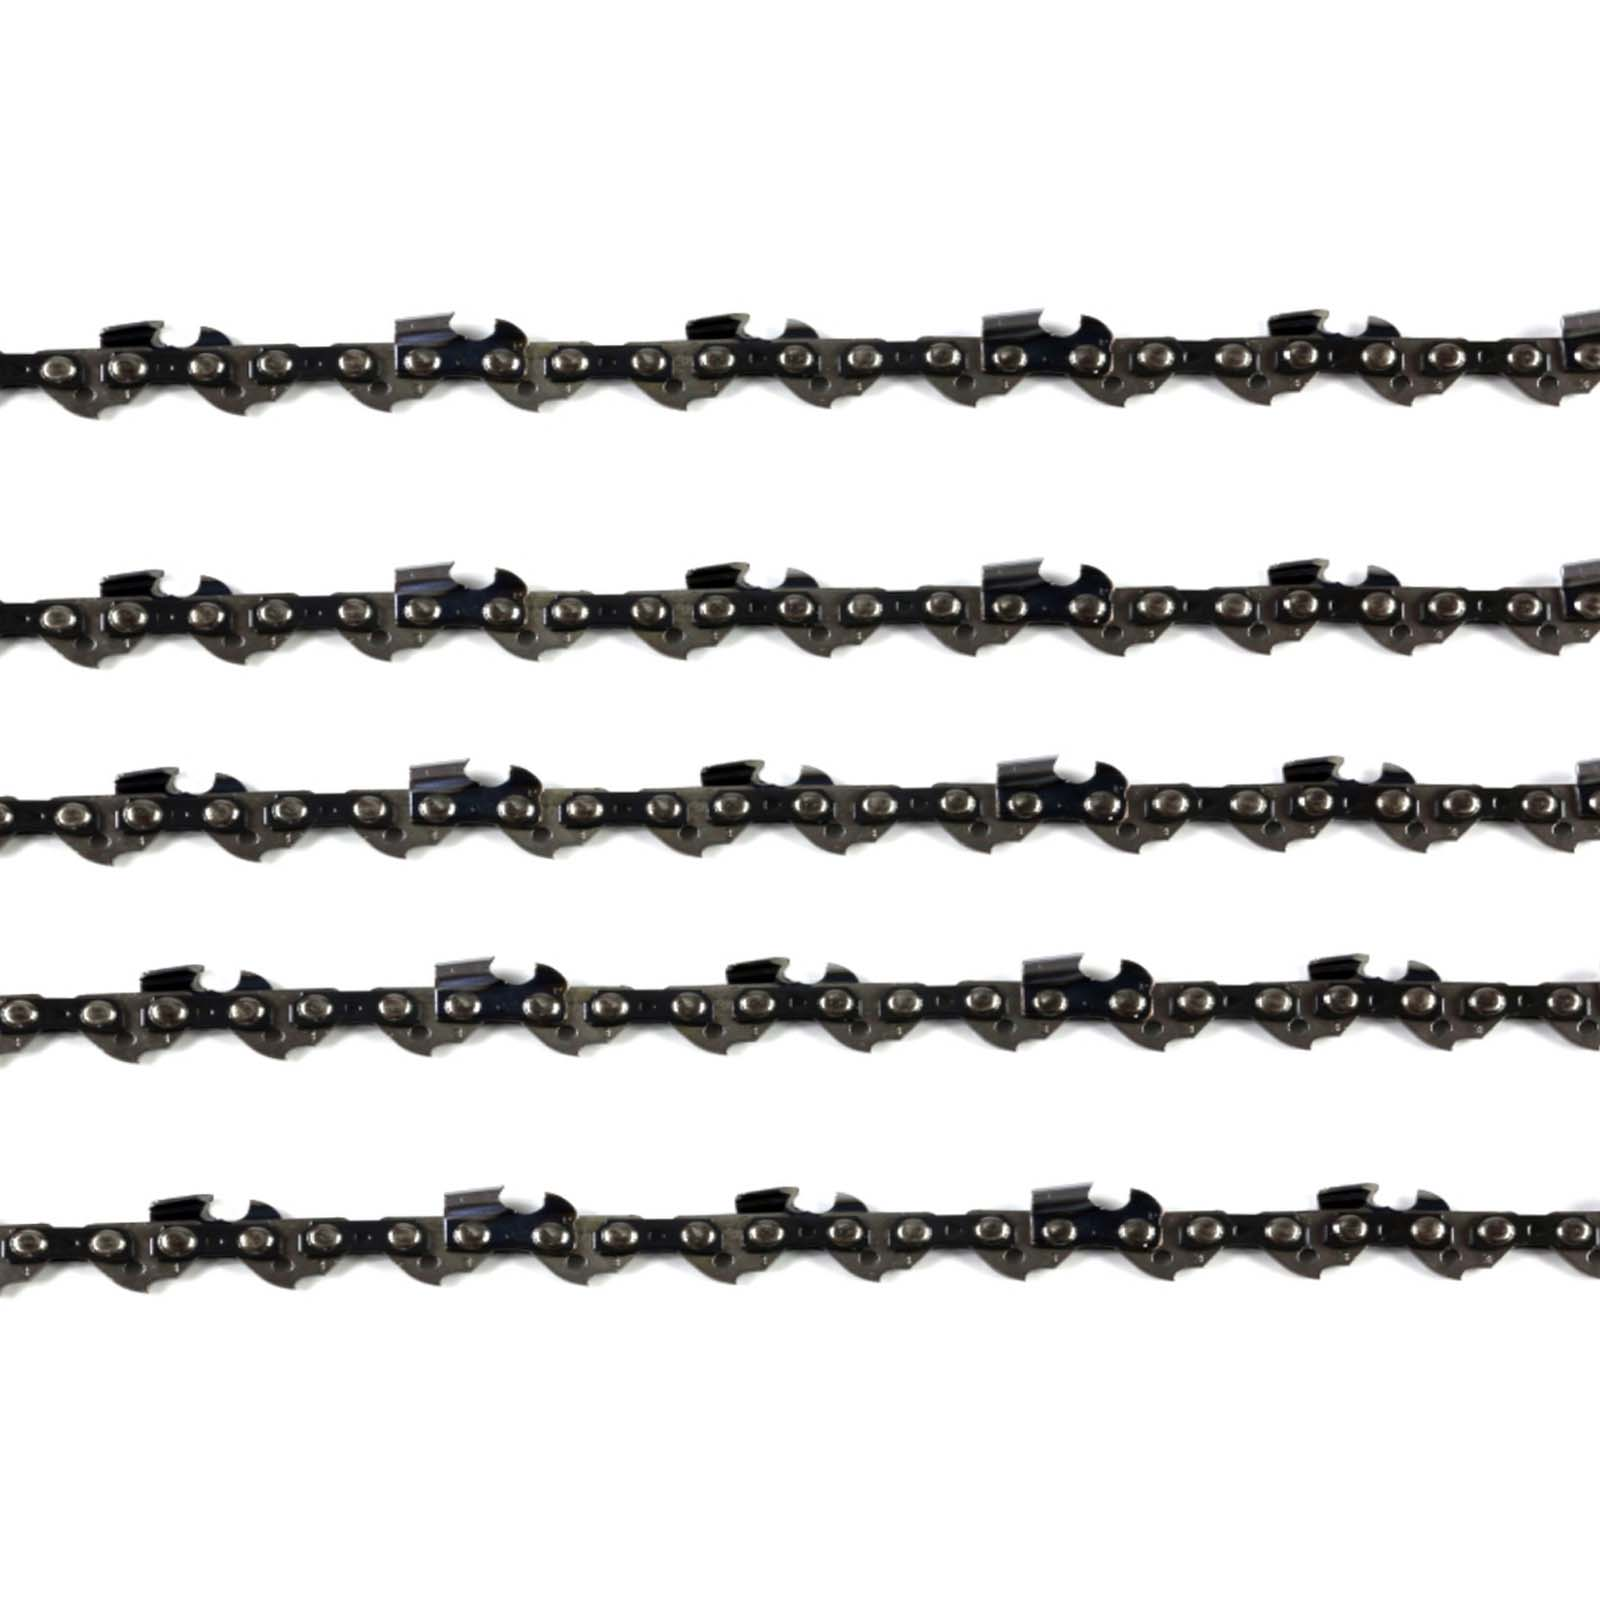 5x Chainsaw Chains Semi Chisel 3/8 063 72DL for Stihl 20'' Bar 029 066 MS290 360